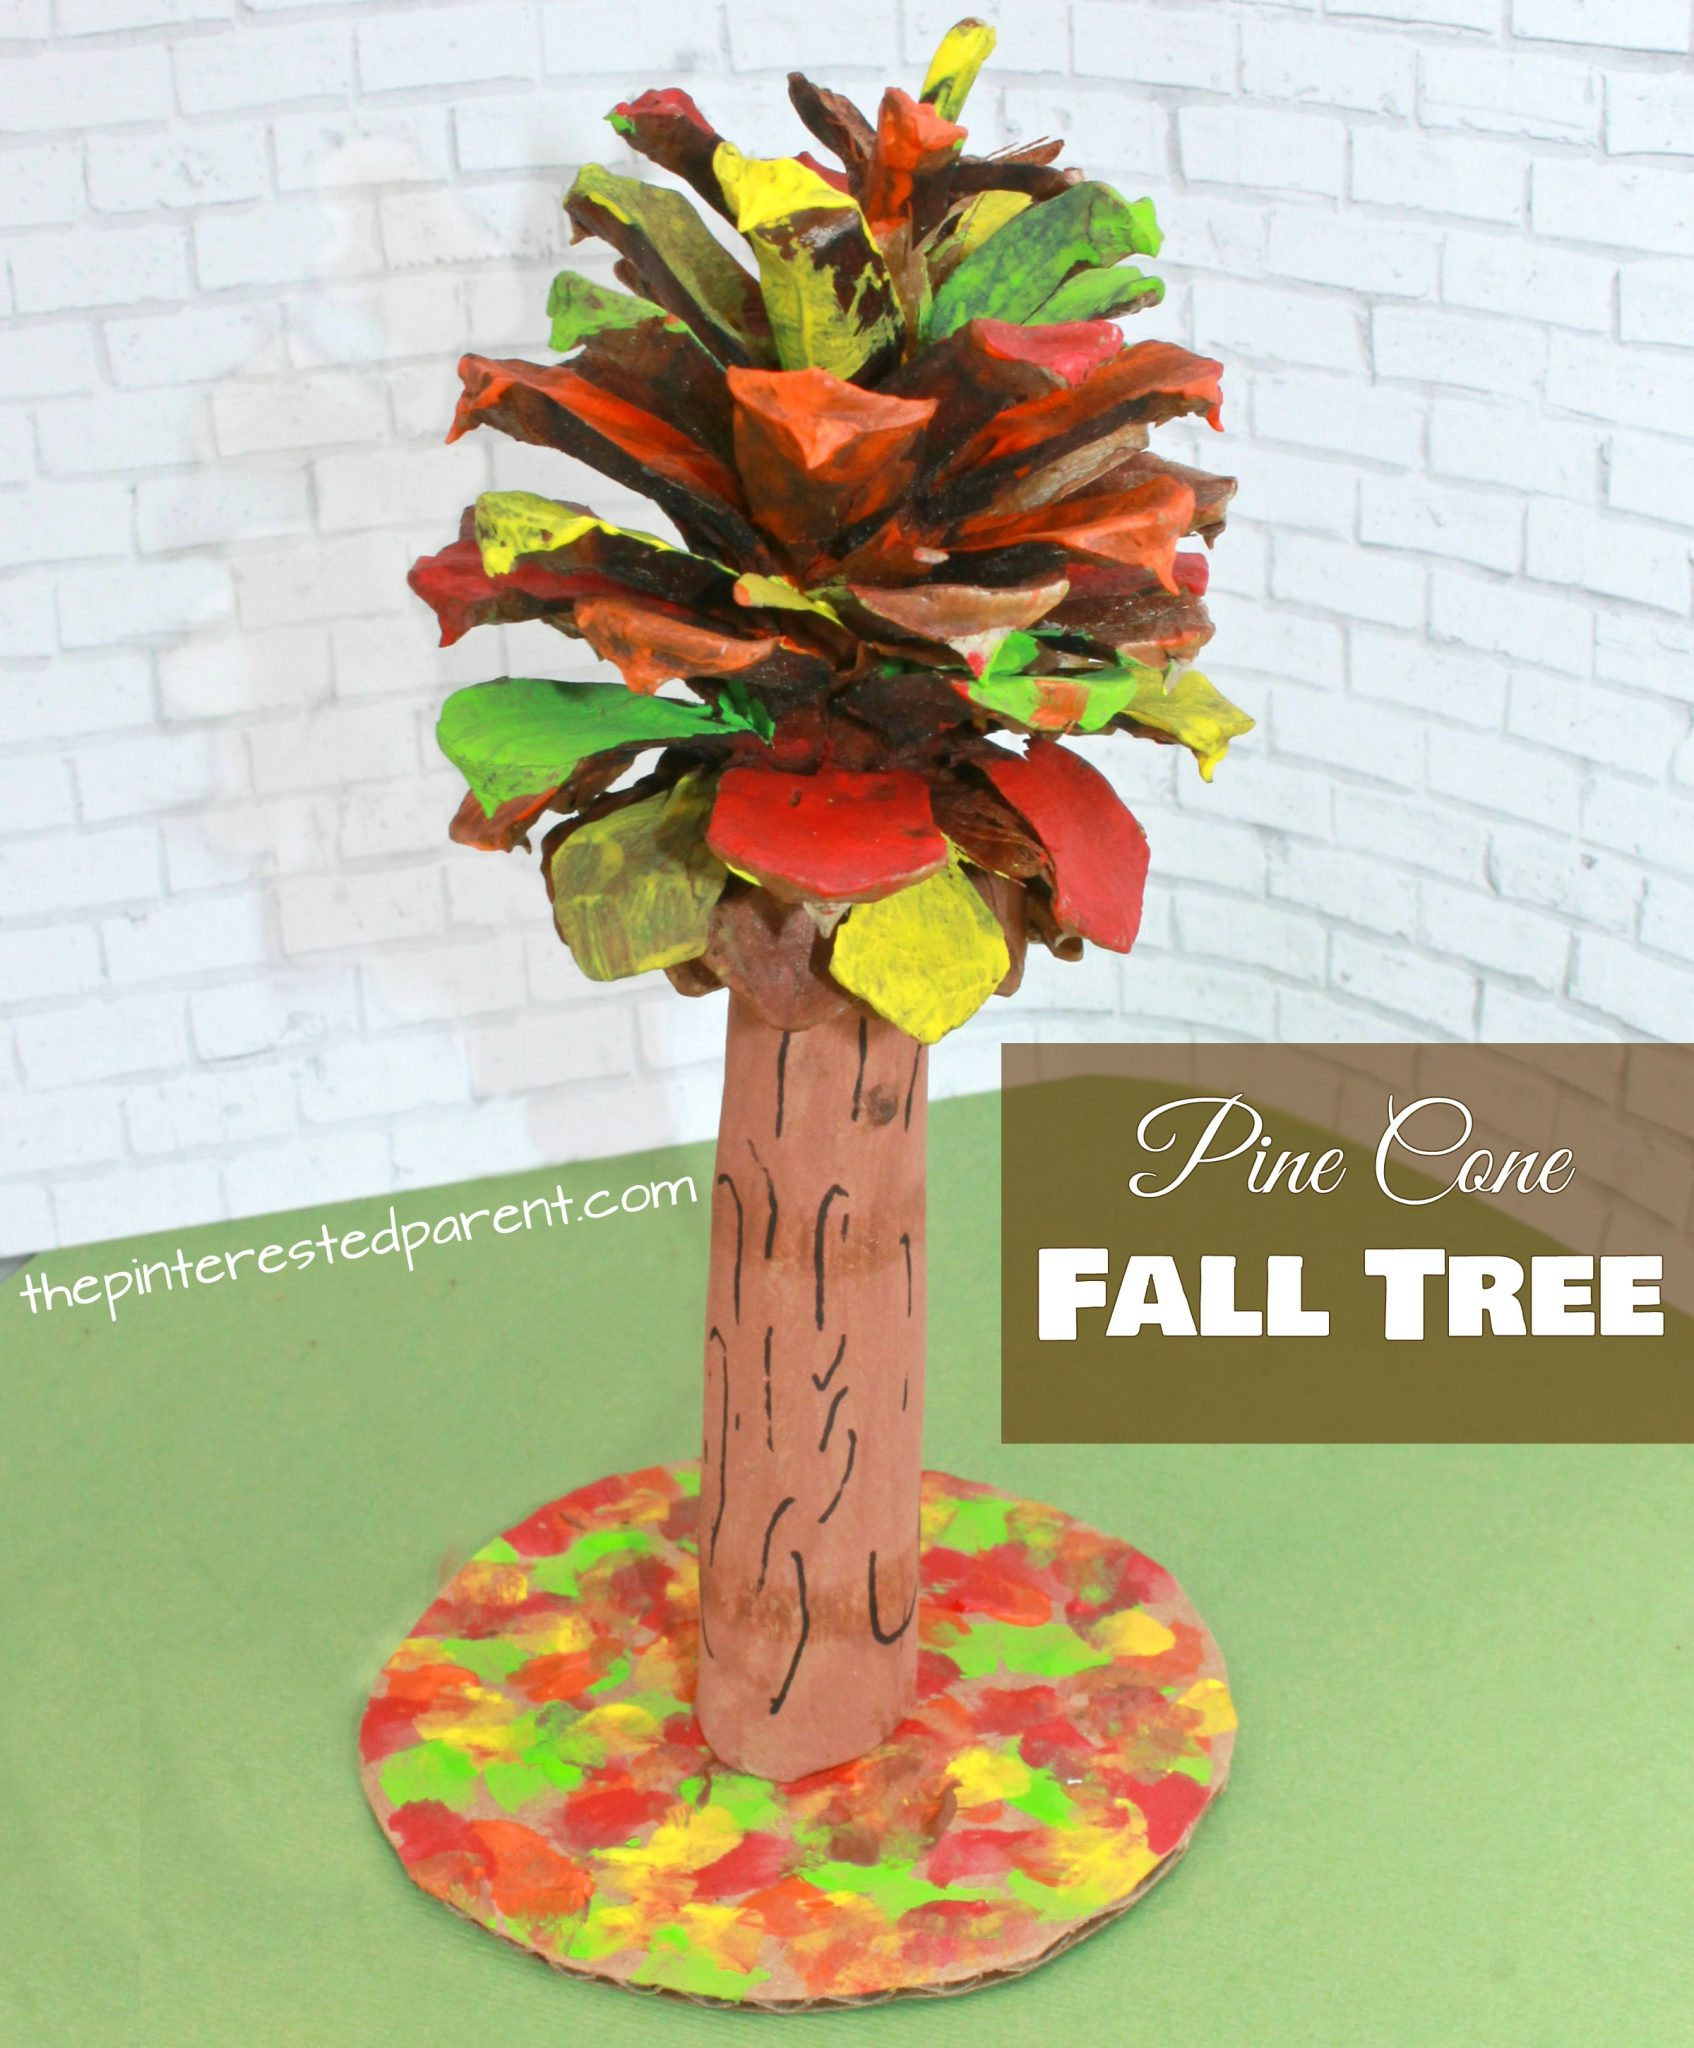 Pine cone fall tree craft the pinterested parent for Pine cone art projects